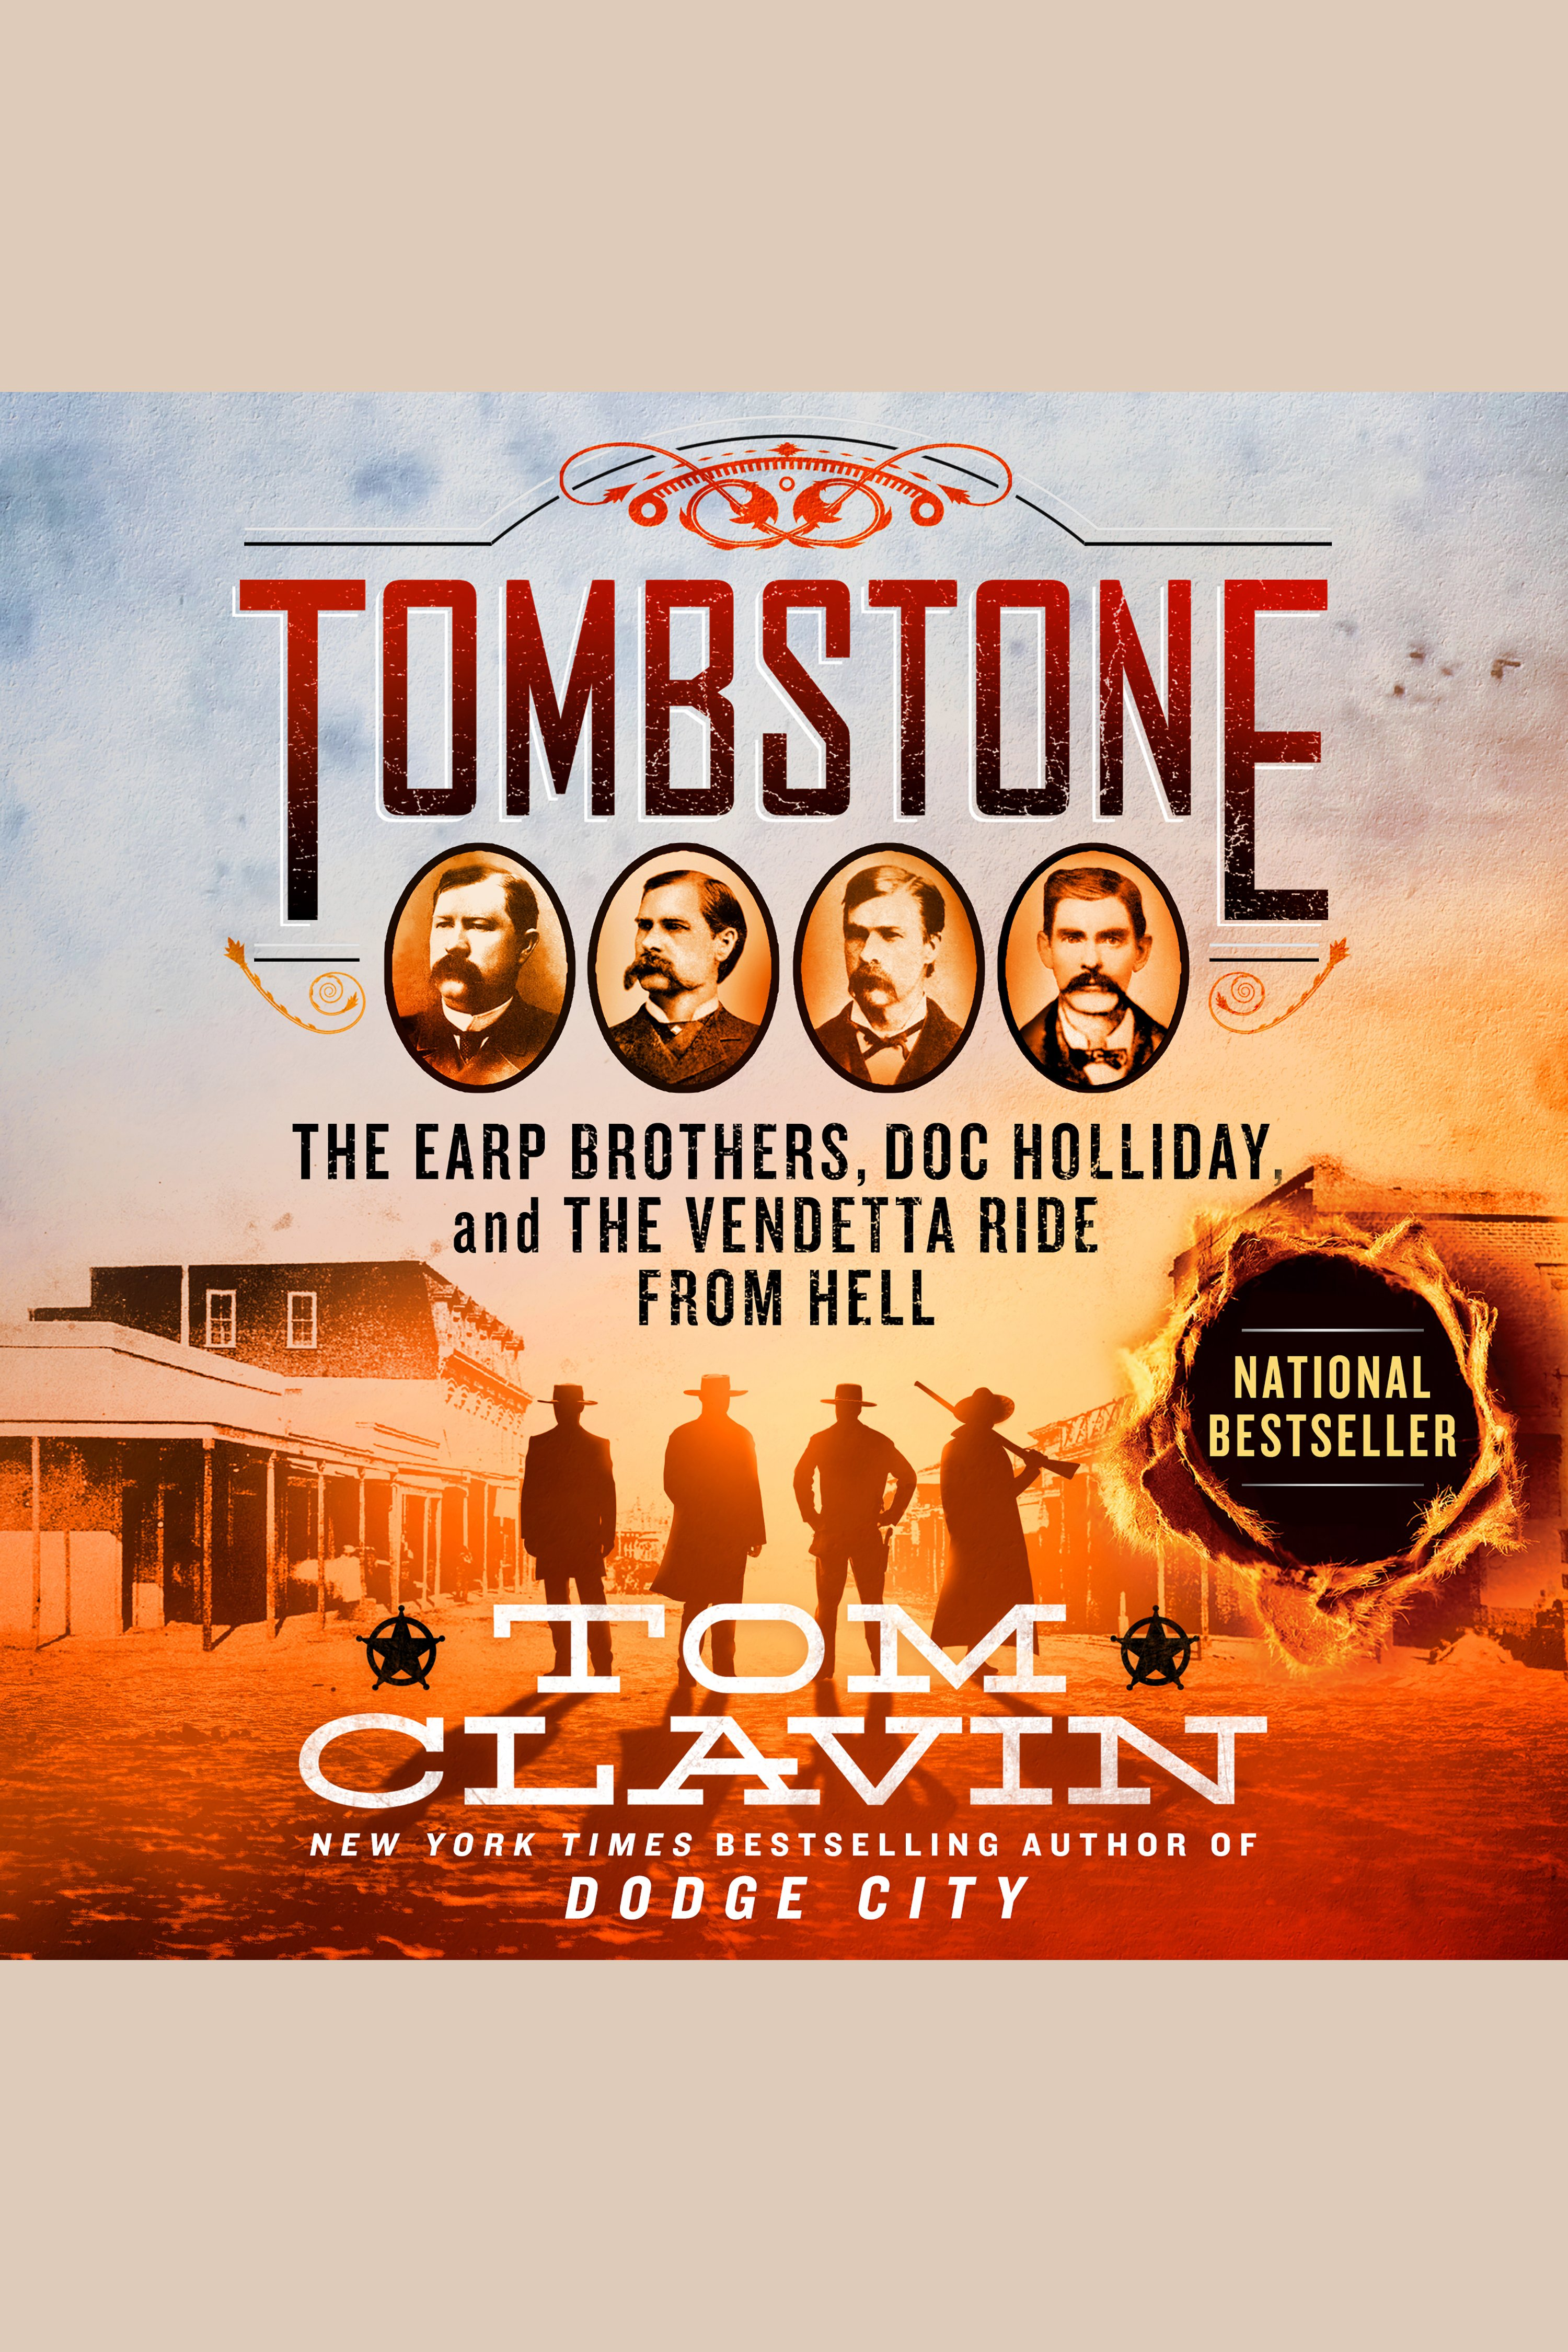 Tombstone The Earp Brothers, Doc Holliday, and the Vendetta Ride From Hell cover image